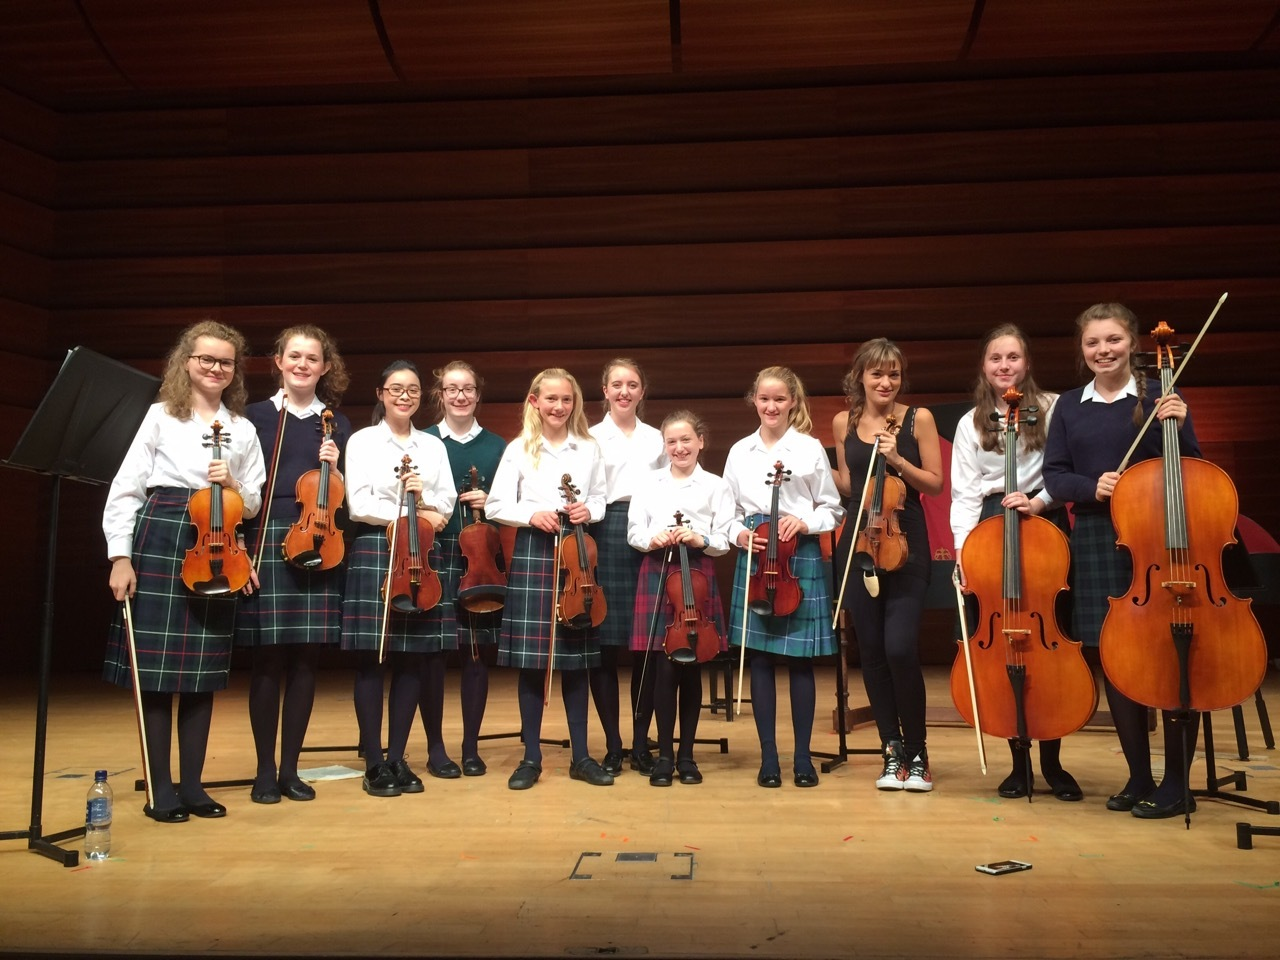 Caecilia stapper, Lucy Whitaker, Victoria Yeung, Lissie Cook, Iona Aldridge, Iona Godfrey-Faussett, Niamh Kelly (Ardvreck School), Alannah Grieve, Nicola Benedetti, Sophie Leaver and Susie Dougall